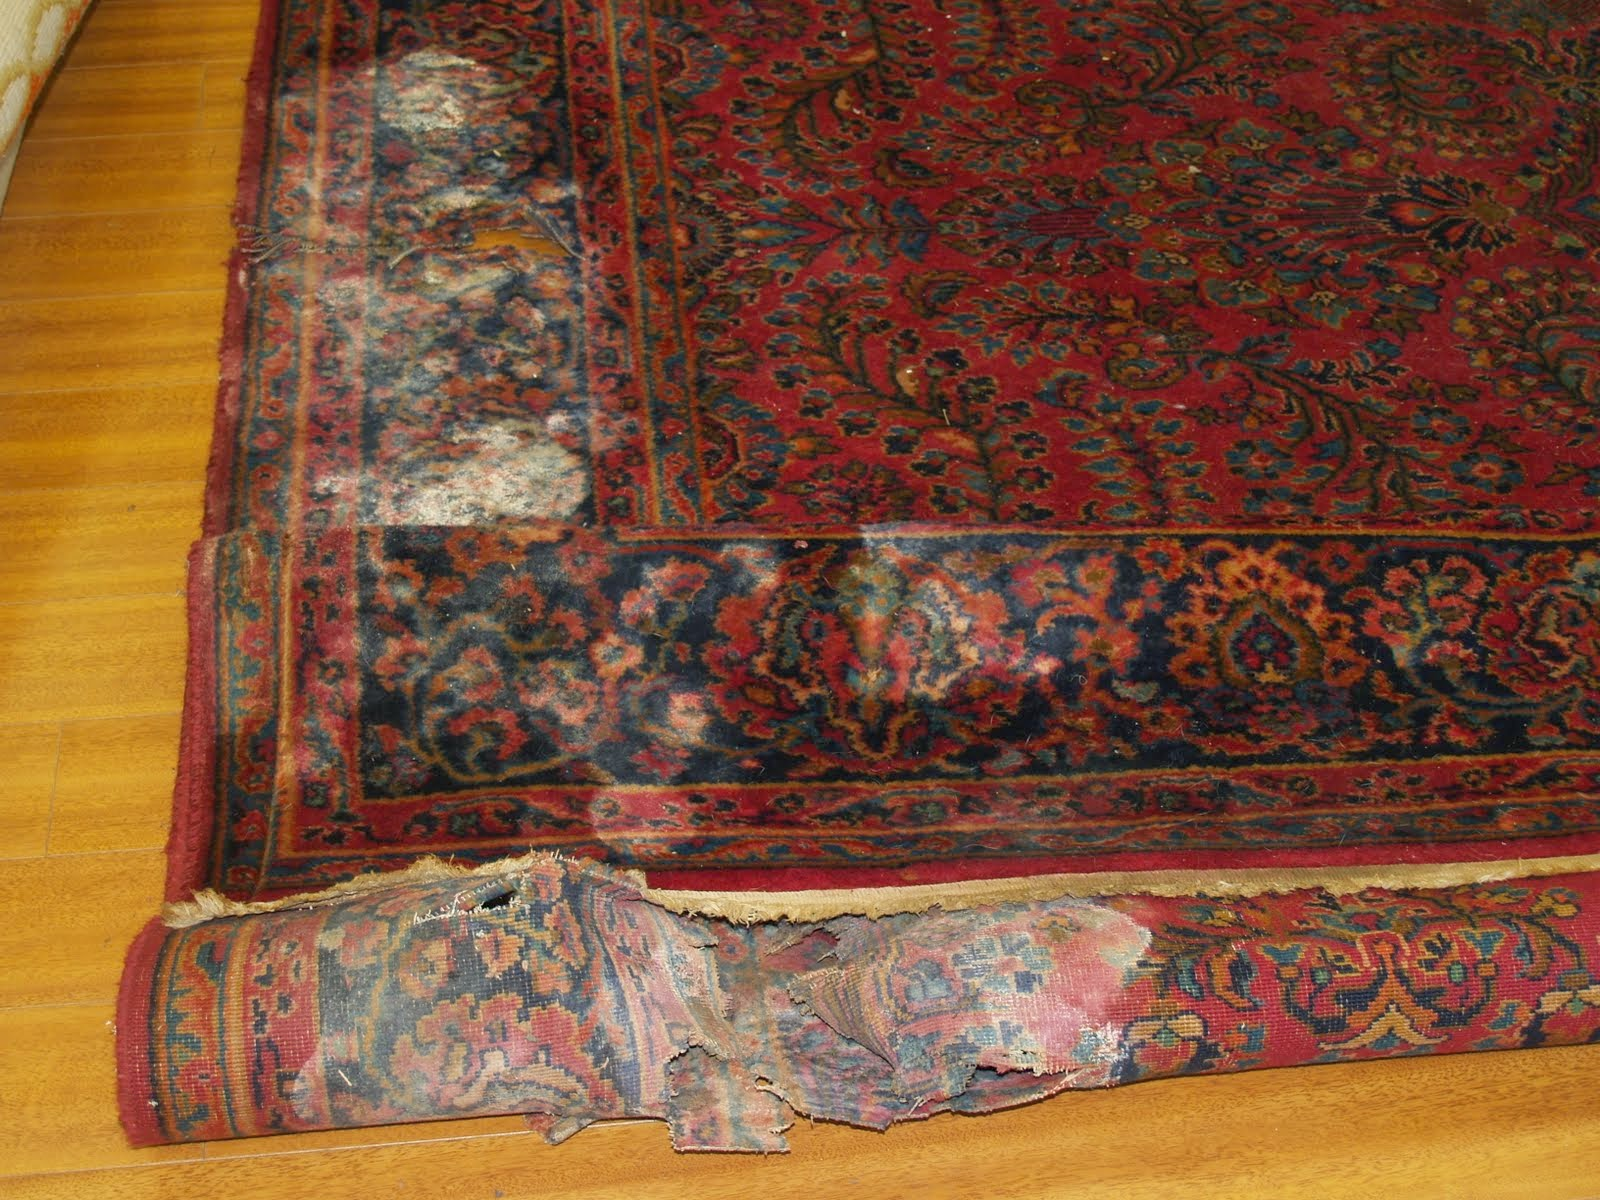 We Removed All The Rotten And Damaged Ares And Down Sized The Rug. And Then  Hand Washed It. The Result Was A Good Looking Like A Brand New Karastan Rug.